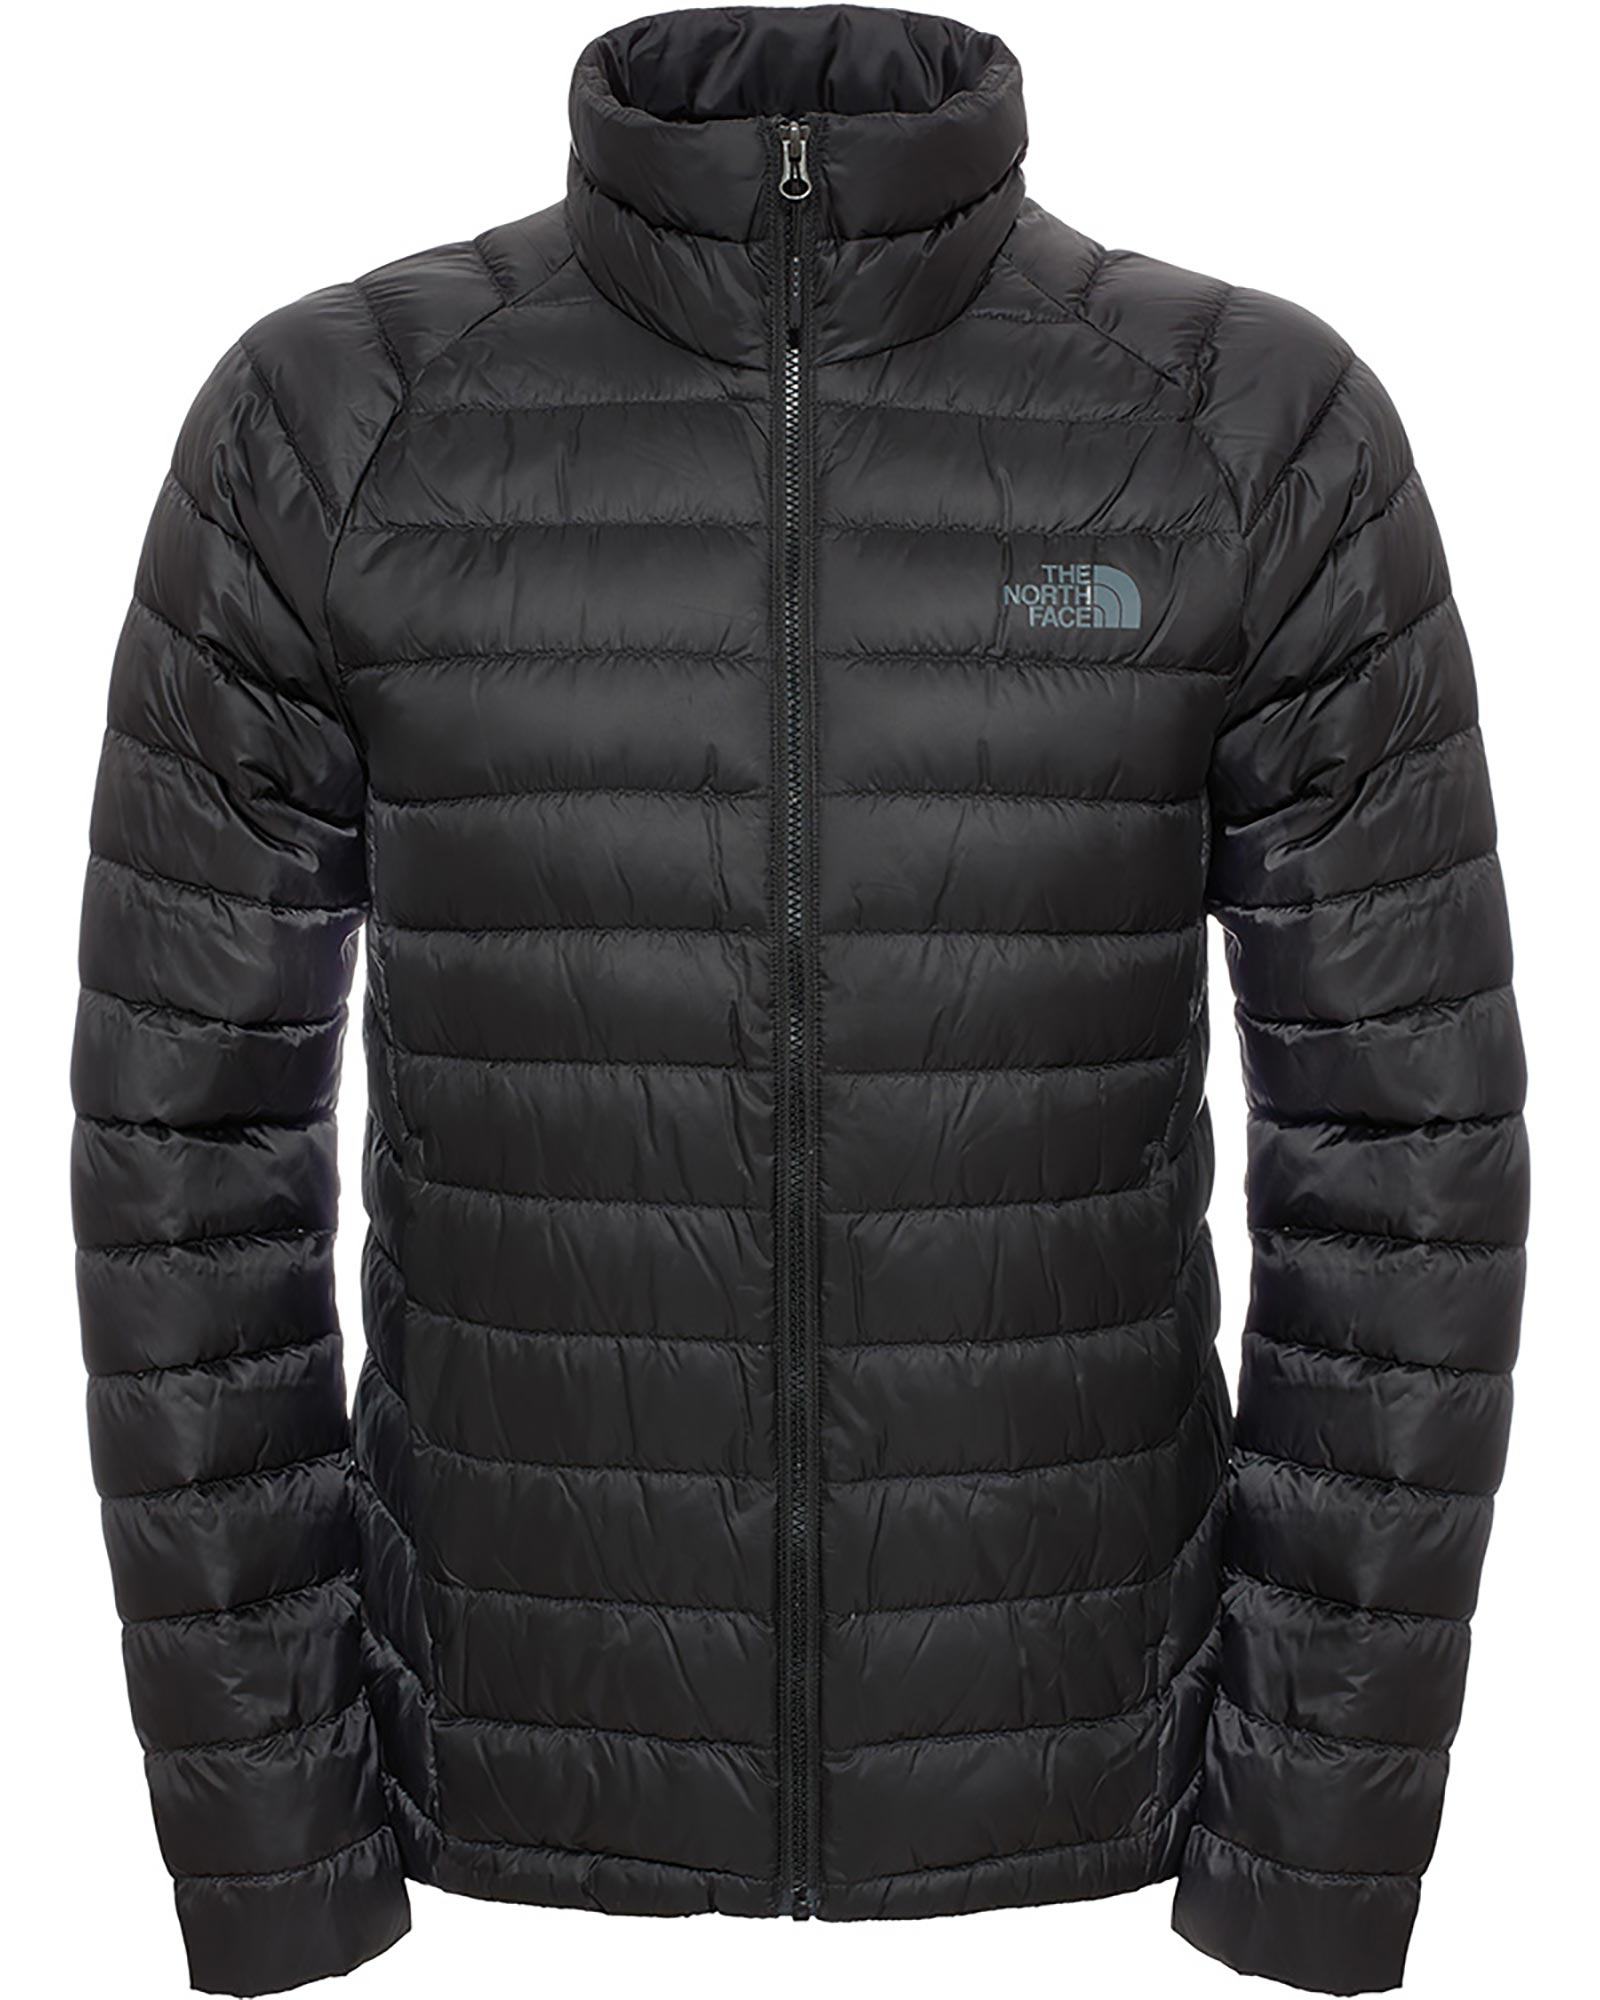 The North Face Trevail Men's Down Jacket